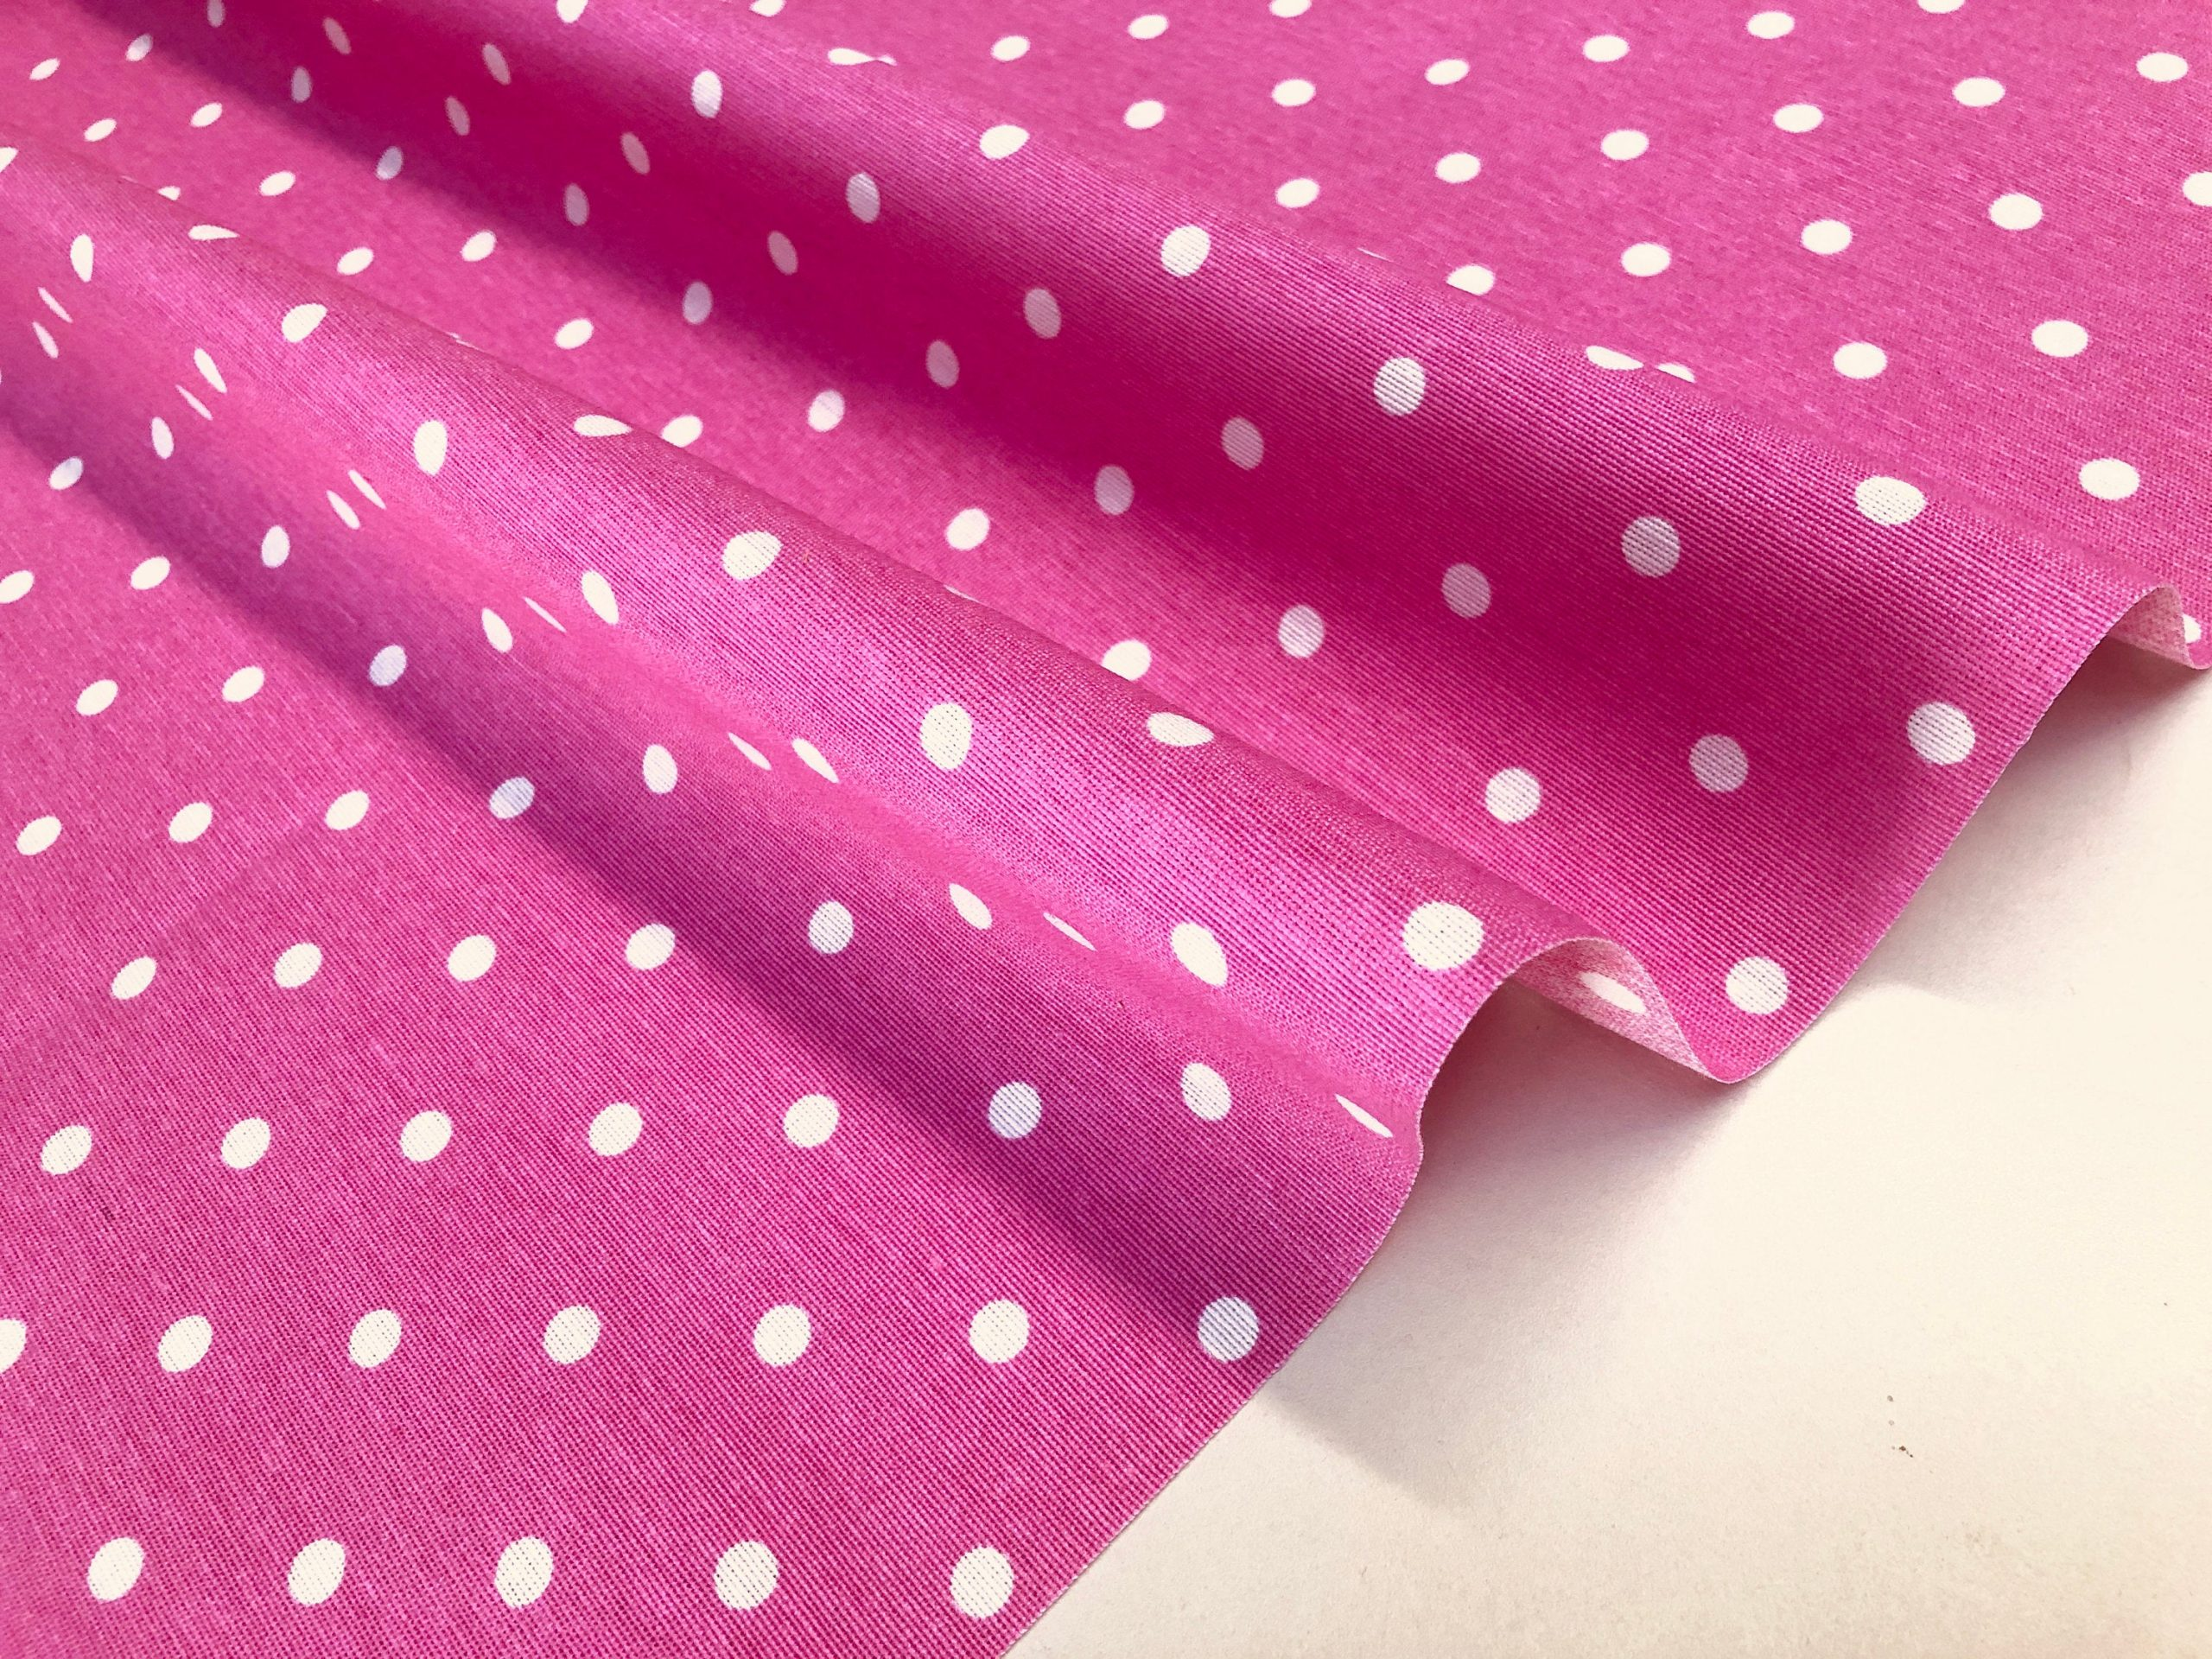 PINK Polka Dot Fabric White Spots Dots PolyCotton Material Classic Chic Textile Home Decor Dress Curtains – 55''/140cm Wide Canvas